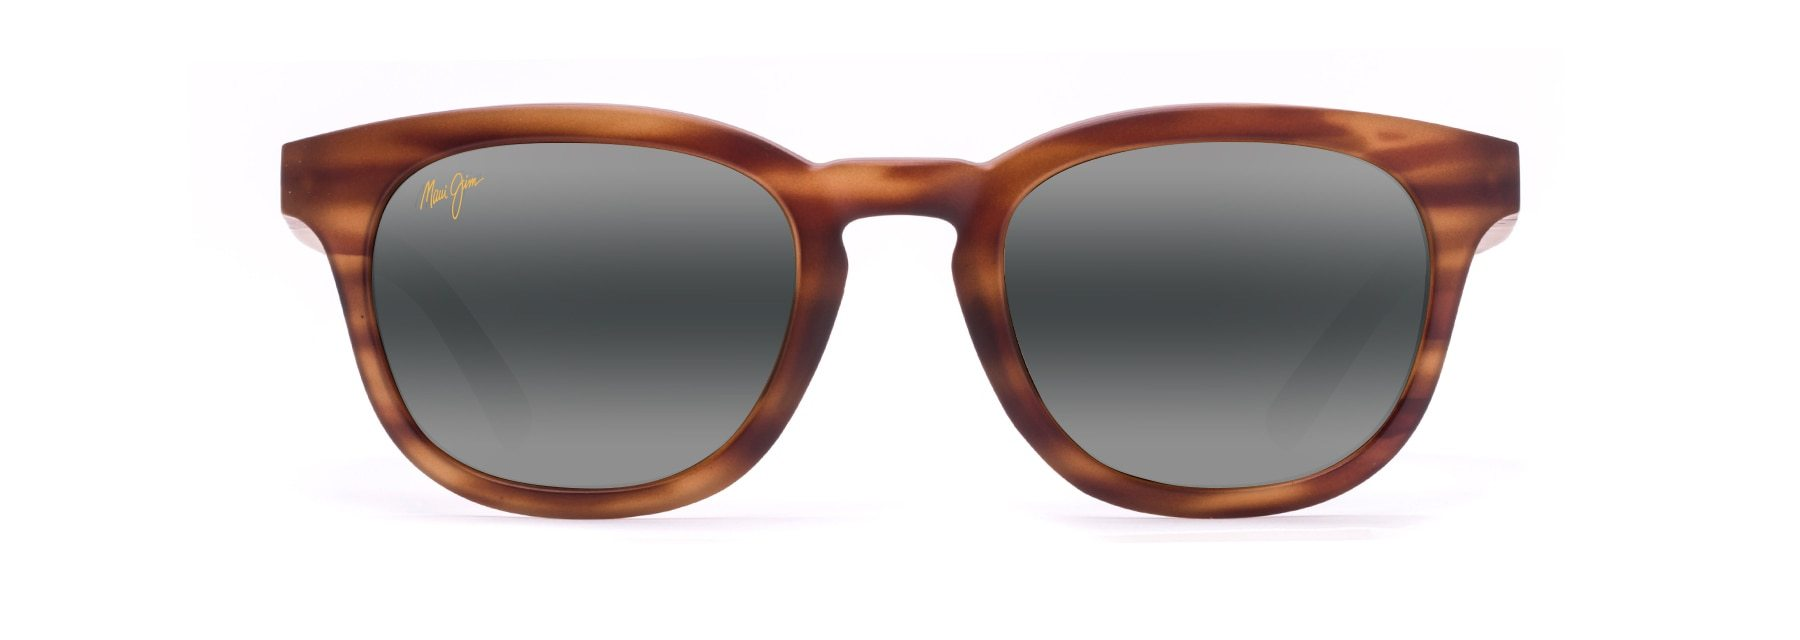 MyMaui Koko Head MM737-006 Sunglasses